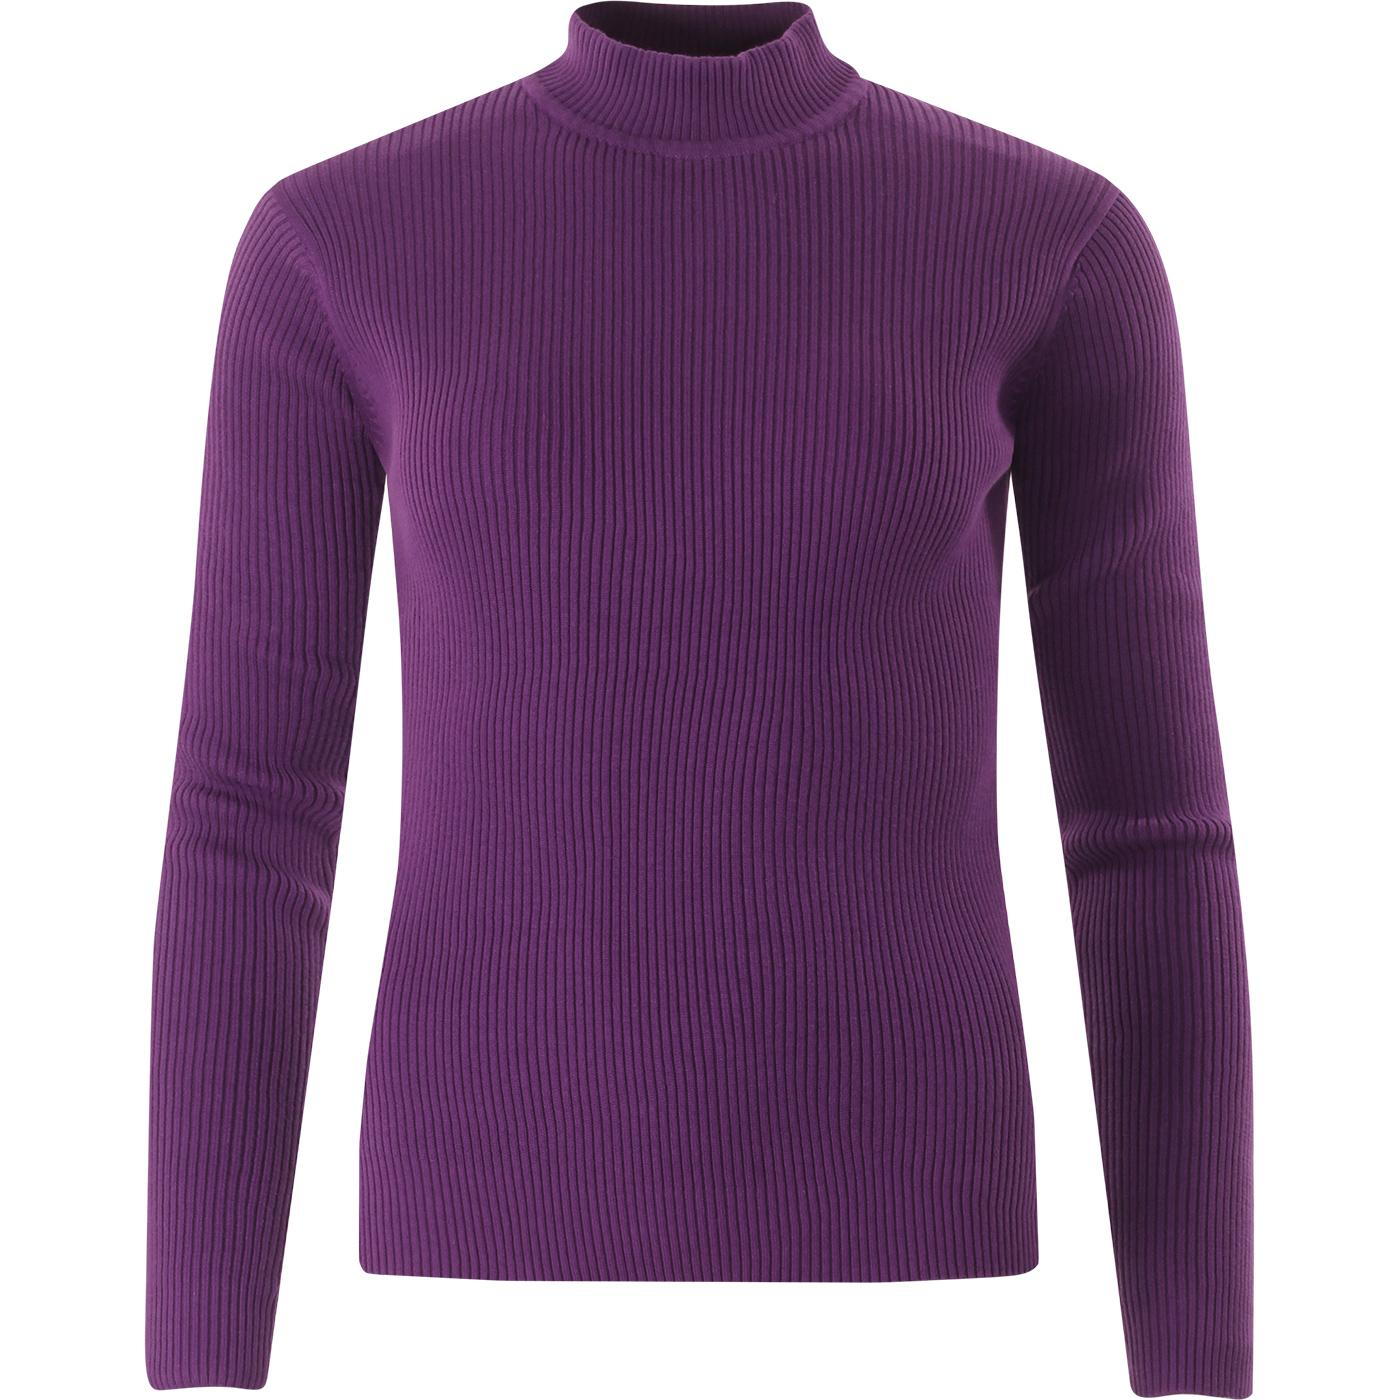 Brigitte MADCAP ENGLAND Ribbed Turtleneck Top (IP)